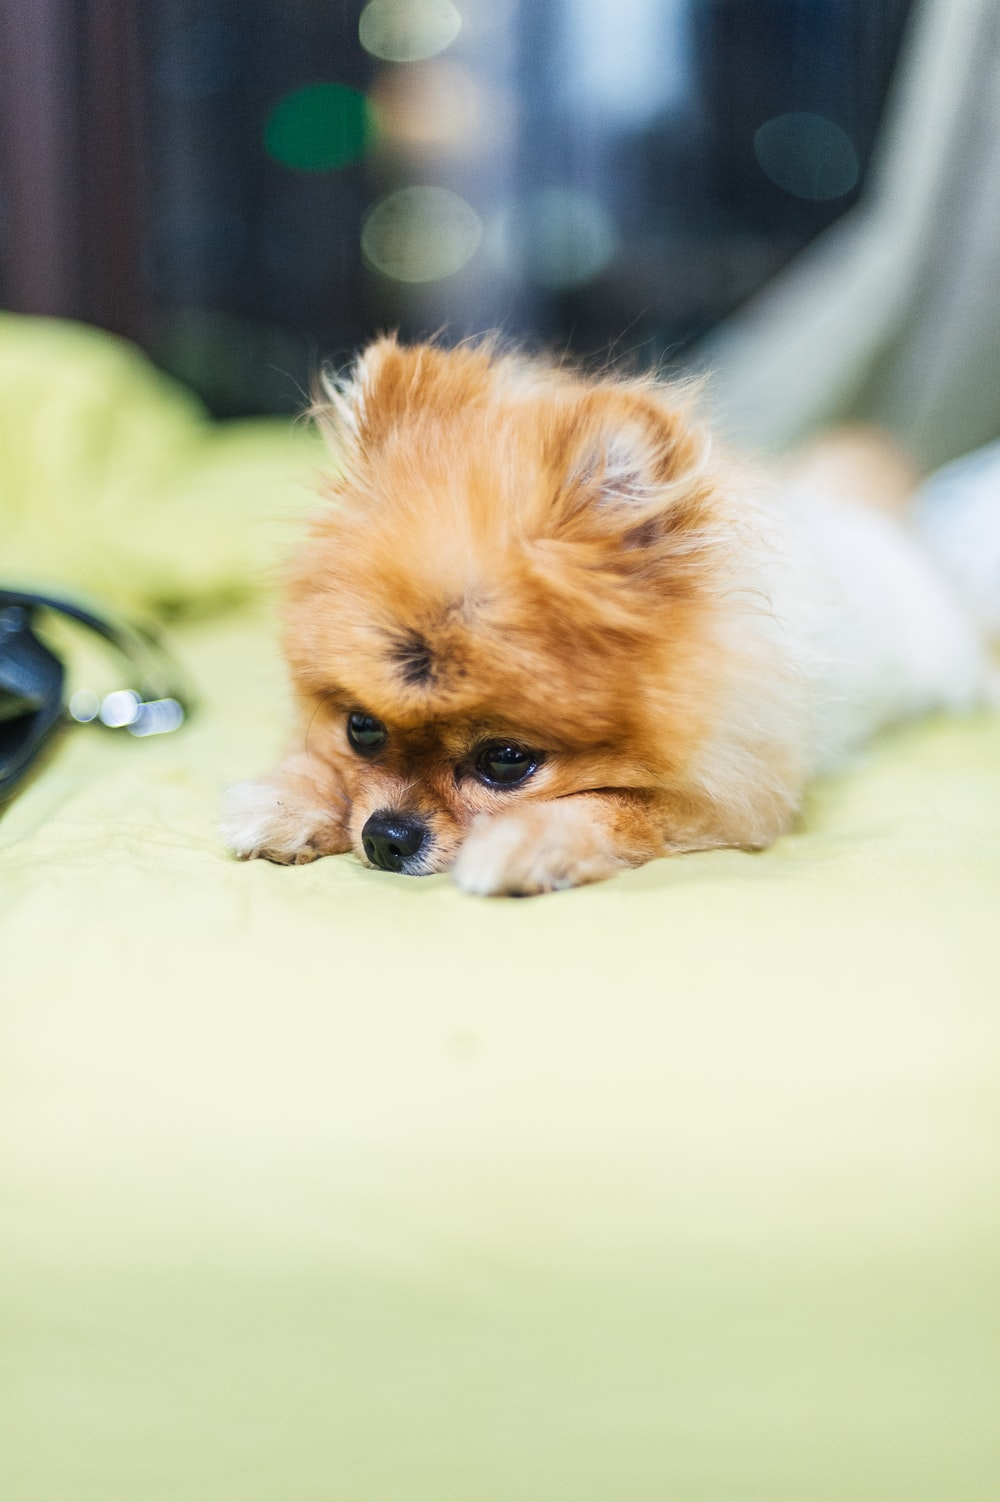 brown puppy on green textile